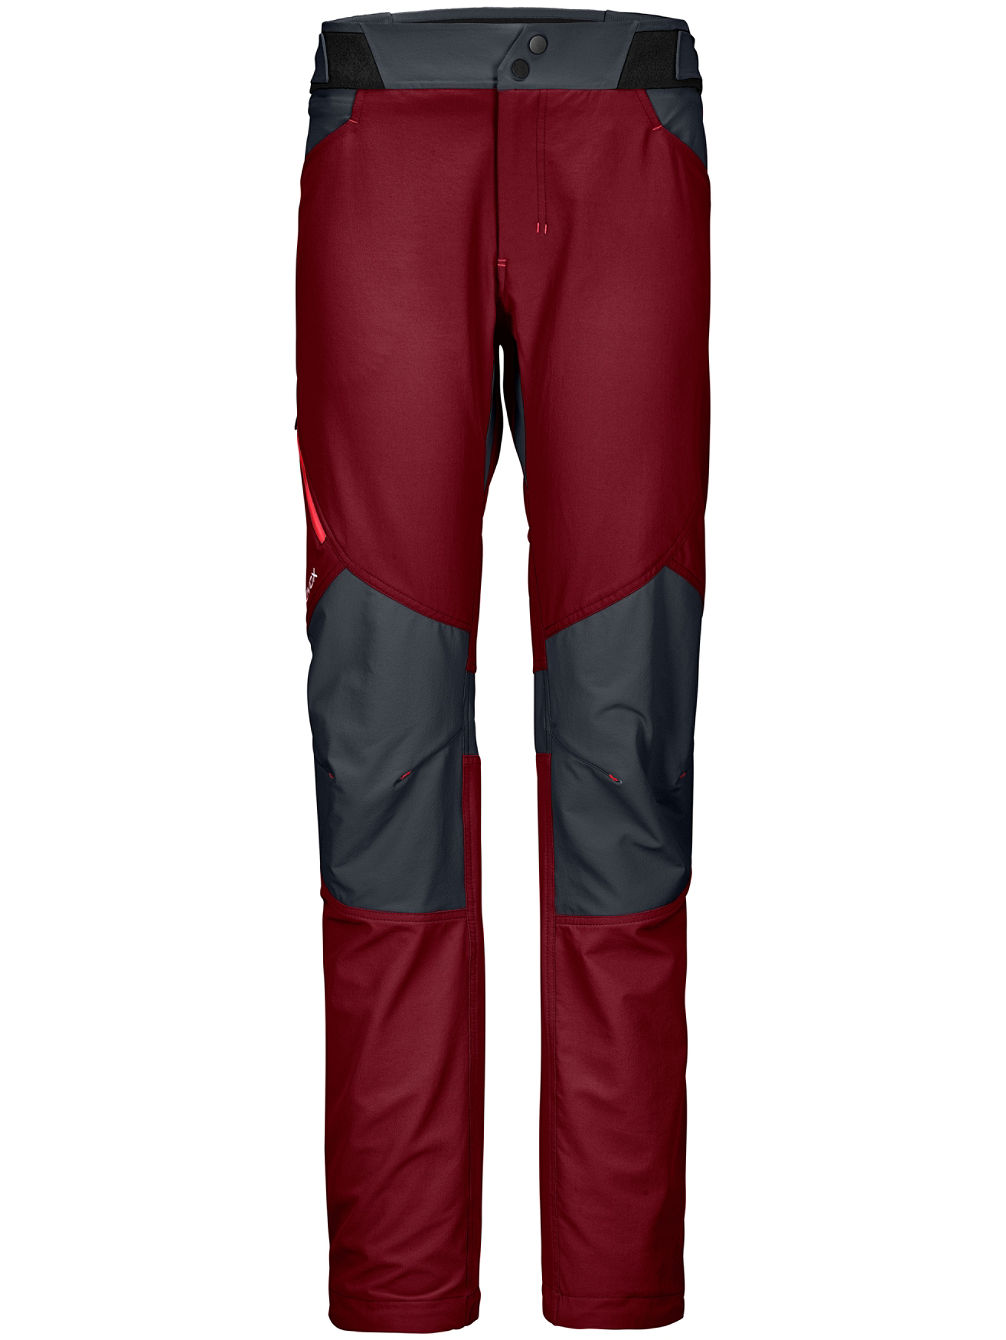 Pala Outdoor Pants